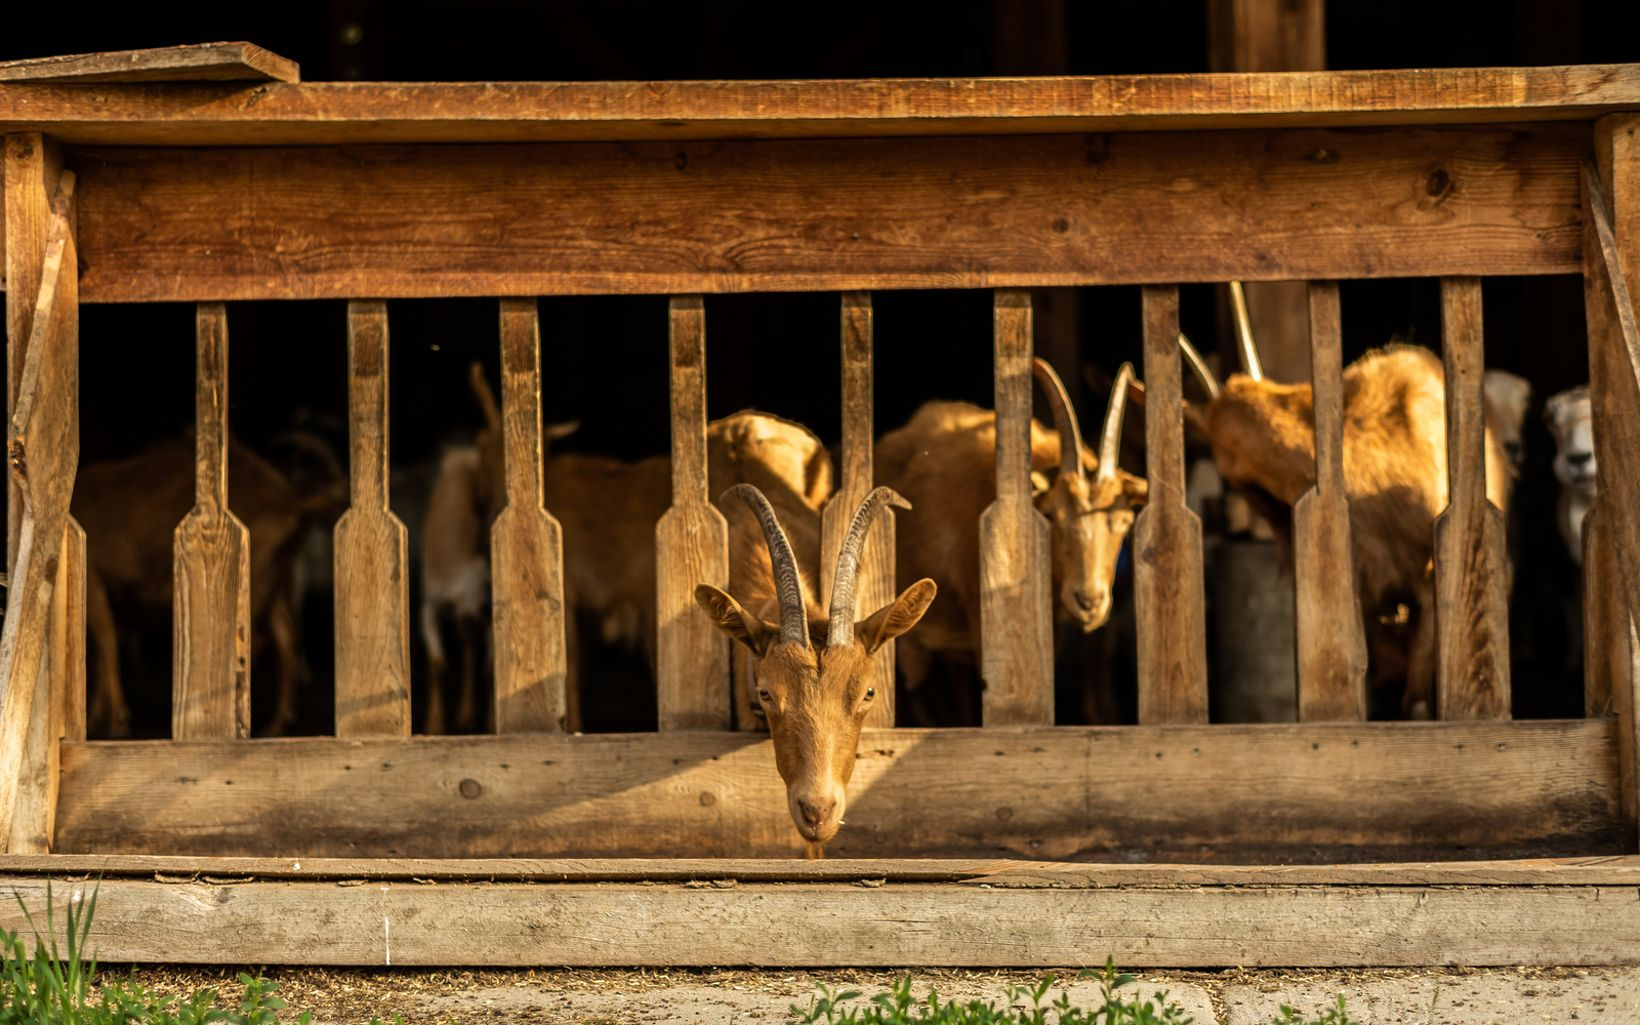 move from pasture to pen as they await their turns at milking stations in the Methow Valley's Sunny Pine Farm. The dairy is home to 200 Guernsey goats.